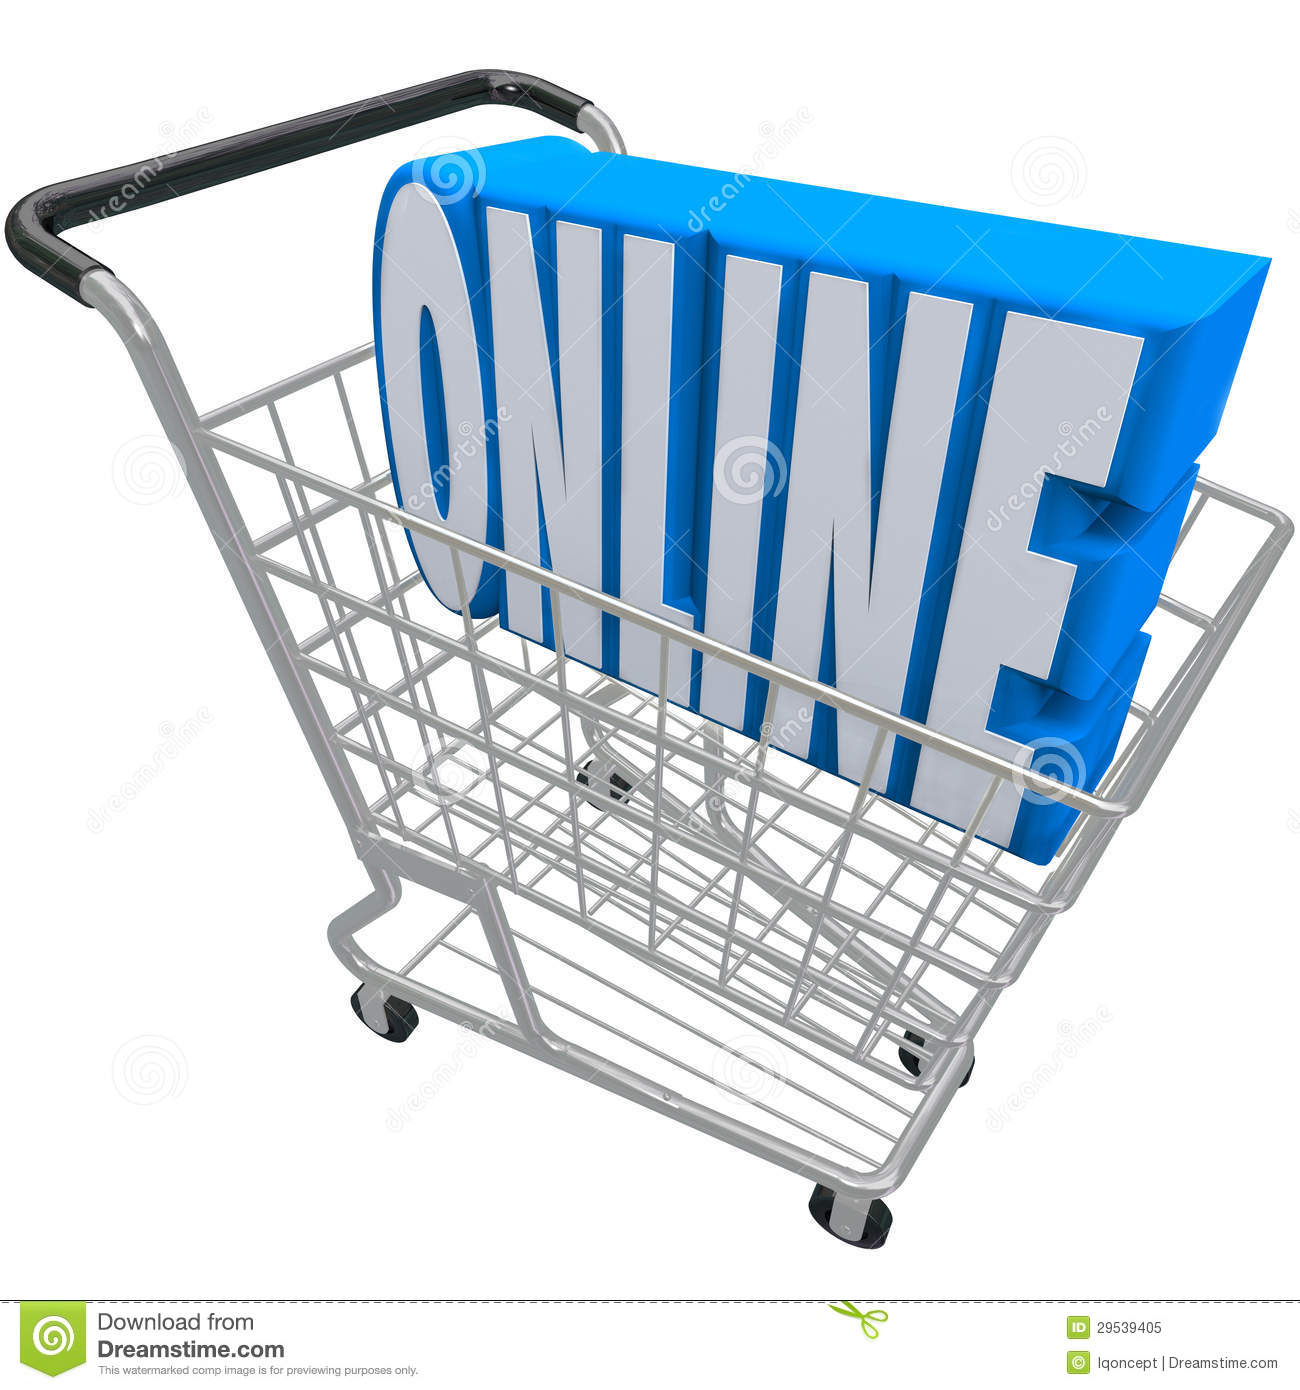 Baskets Online Basket Shop Online Driverlayer Search Engine